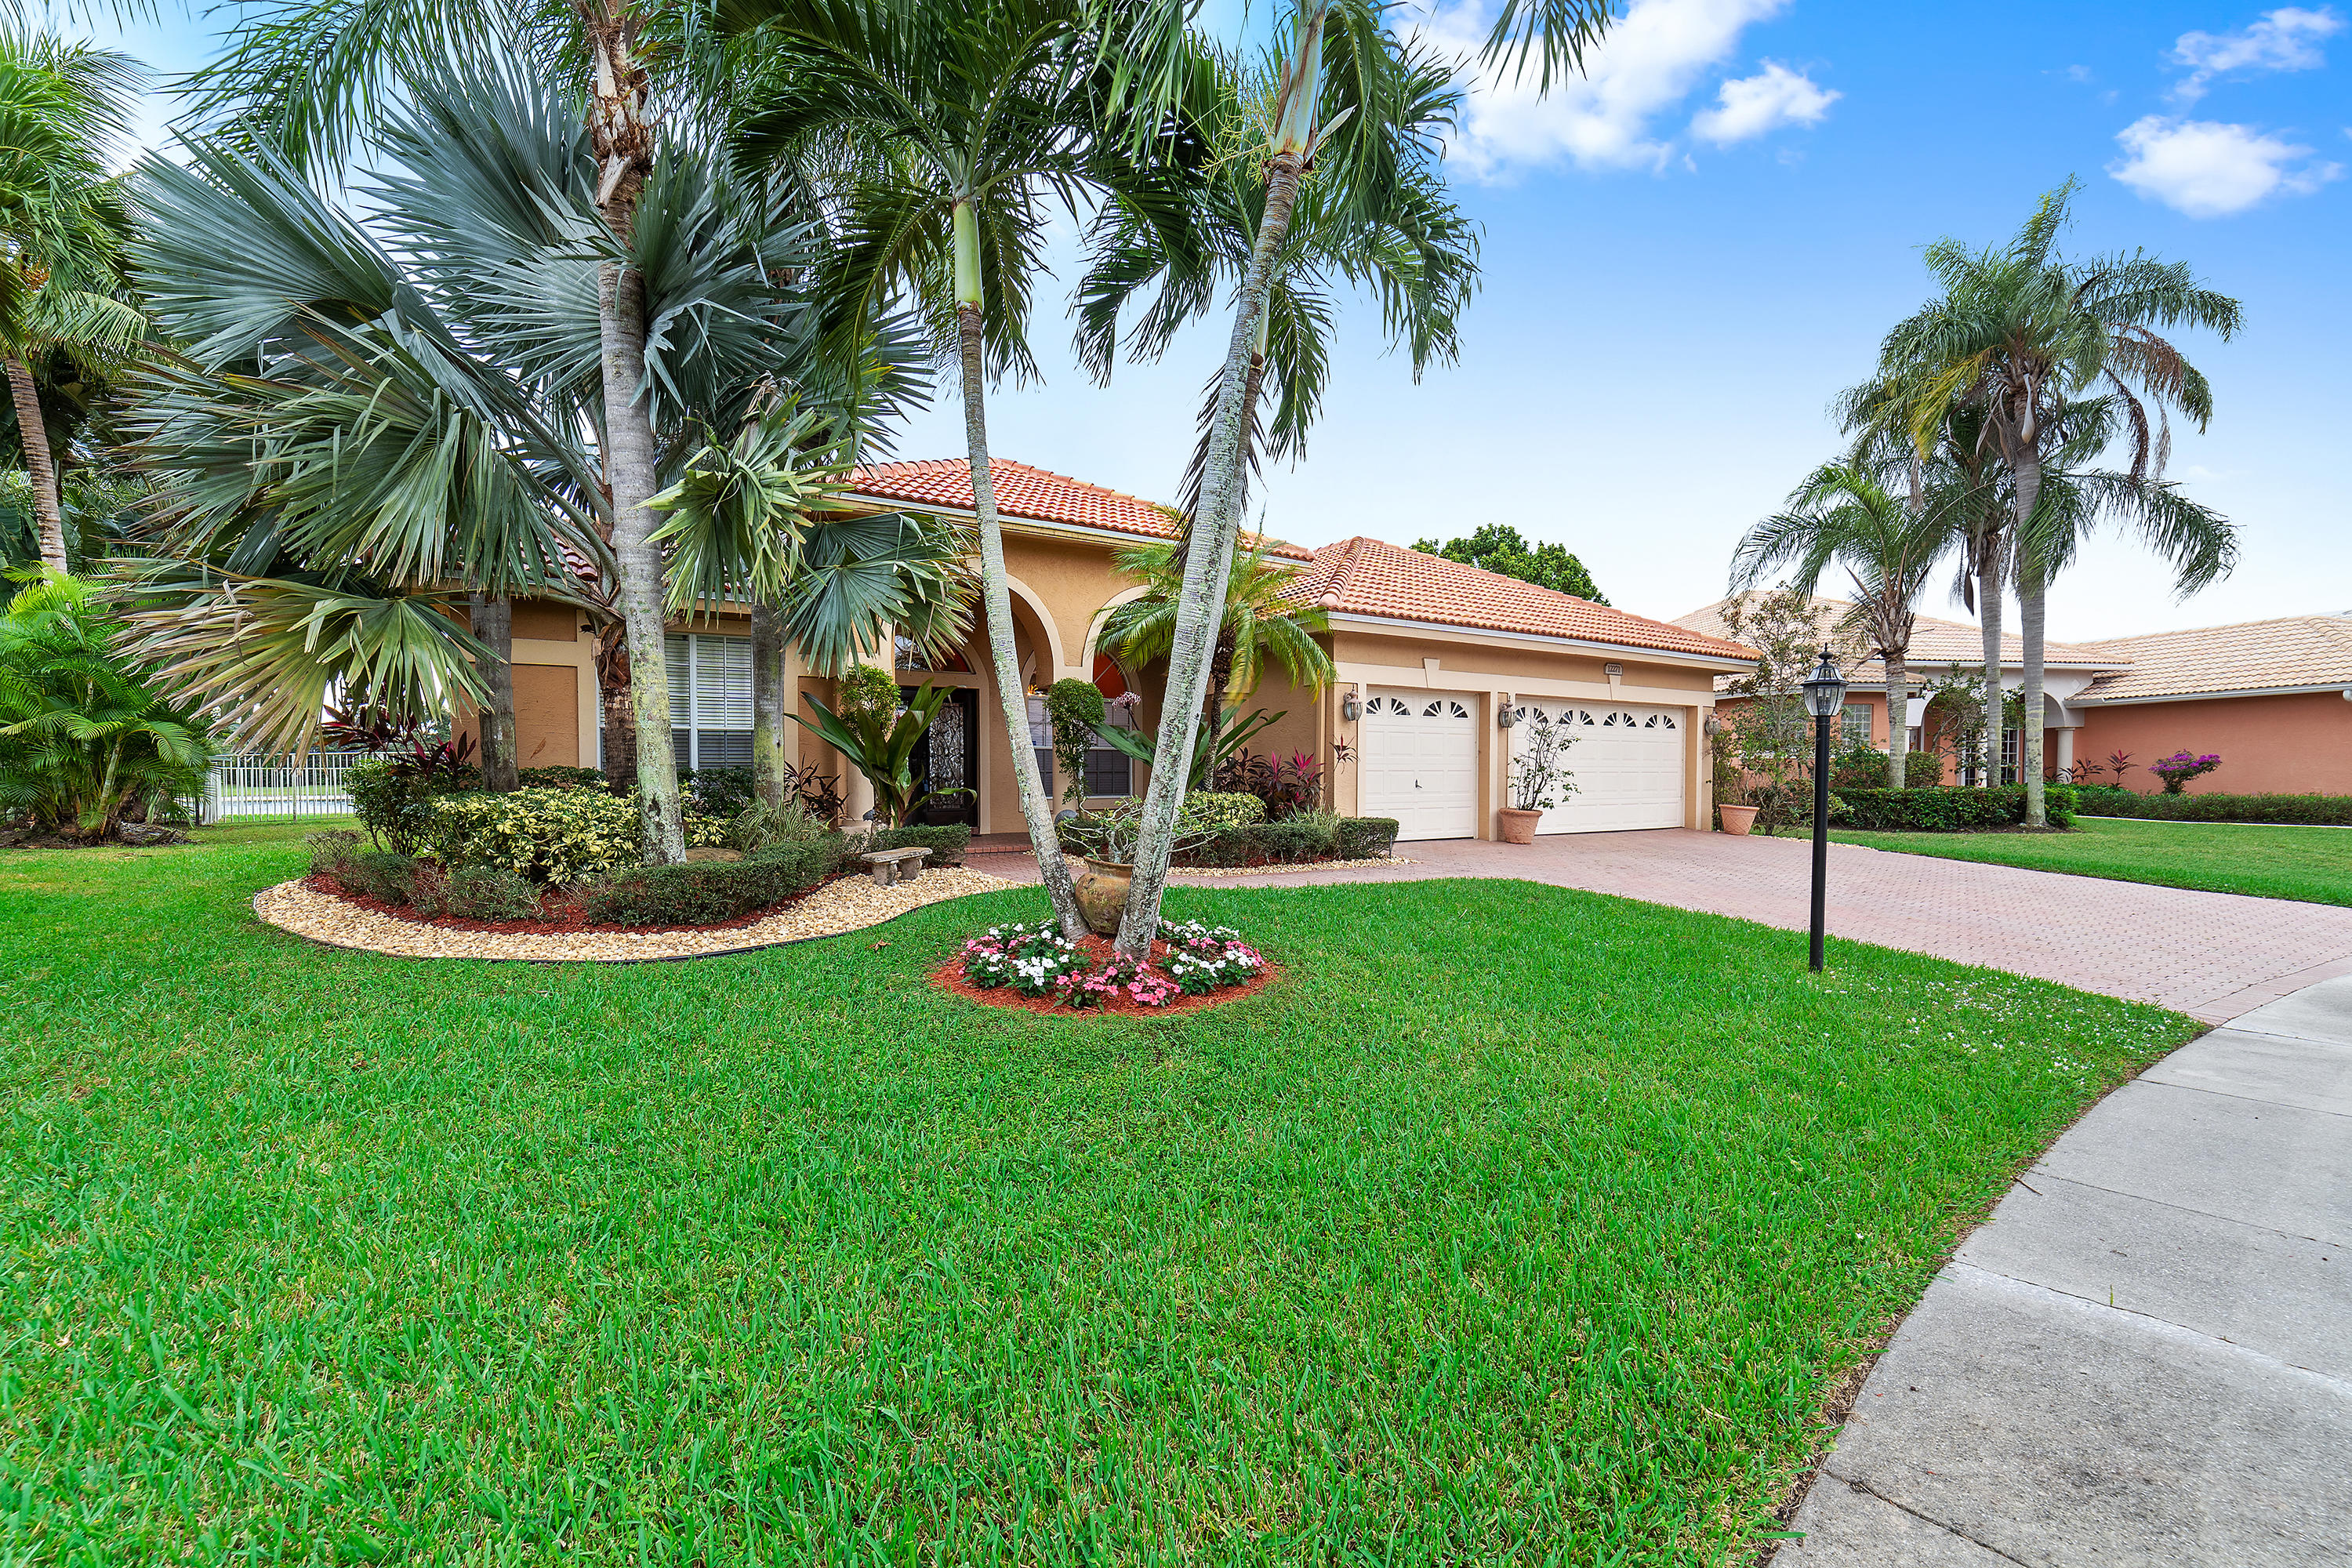 This beautiful 5 bed, 3 bath home with breathtaking lake views is on an oversized lot in the sought after community of Boca Falls. This well-cared for home has a split floor plan, playroom, updated kitchen with SS appliances, remodeled master and guest baths, tile & wood flooring, & plenty of natural light. On the exterior this perfectly positioned home has: a New Roof, a fully fenced backyard, with ample space for a pool, 3 car garage, covered patio, hurricane shutters & lush tropical landscaping.  Great home for entertaining & relaxing. Conveniently located close to restaurants, A-Rated schools, shopping, parks & roadways. Boca Falls is a guard gated community with resort style amenities-clubhouse; fitness center; pool; tennis; b-ball; playground. HOA inclds cable & high speed internet.